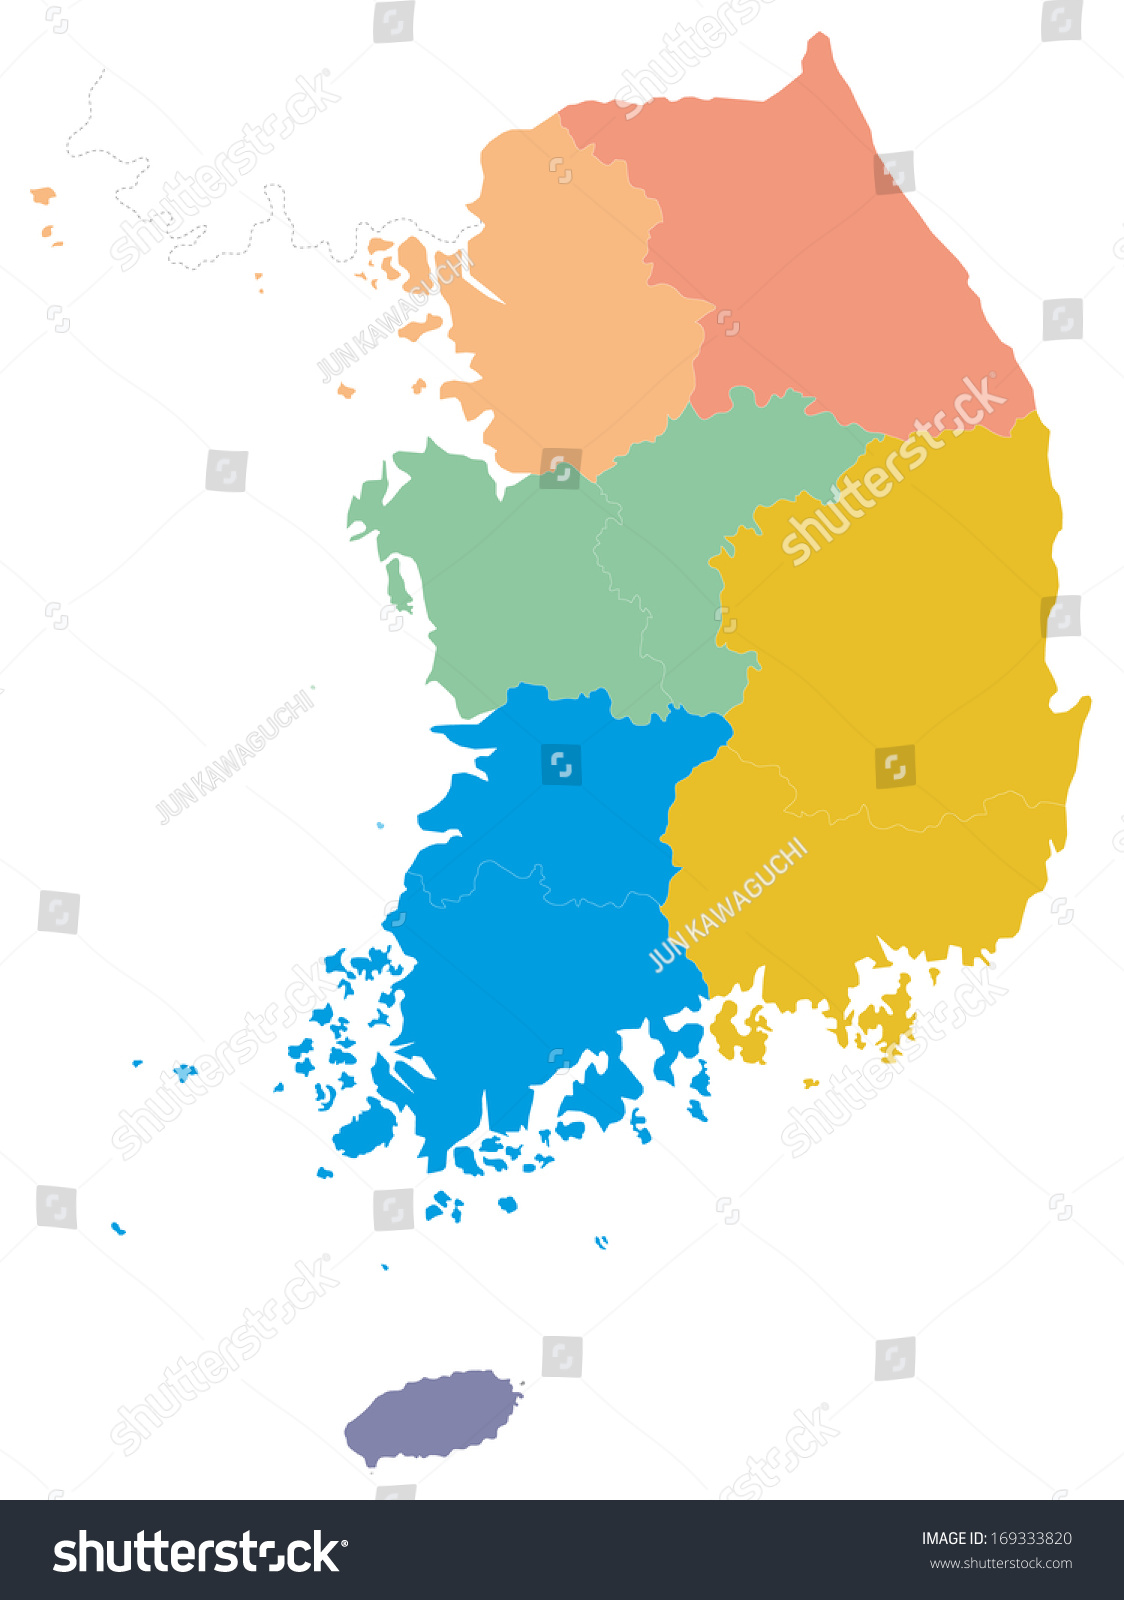 This Map South Korea Simple Map Stock Vector 169333820 - Shutterstock